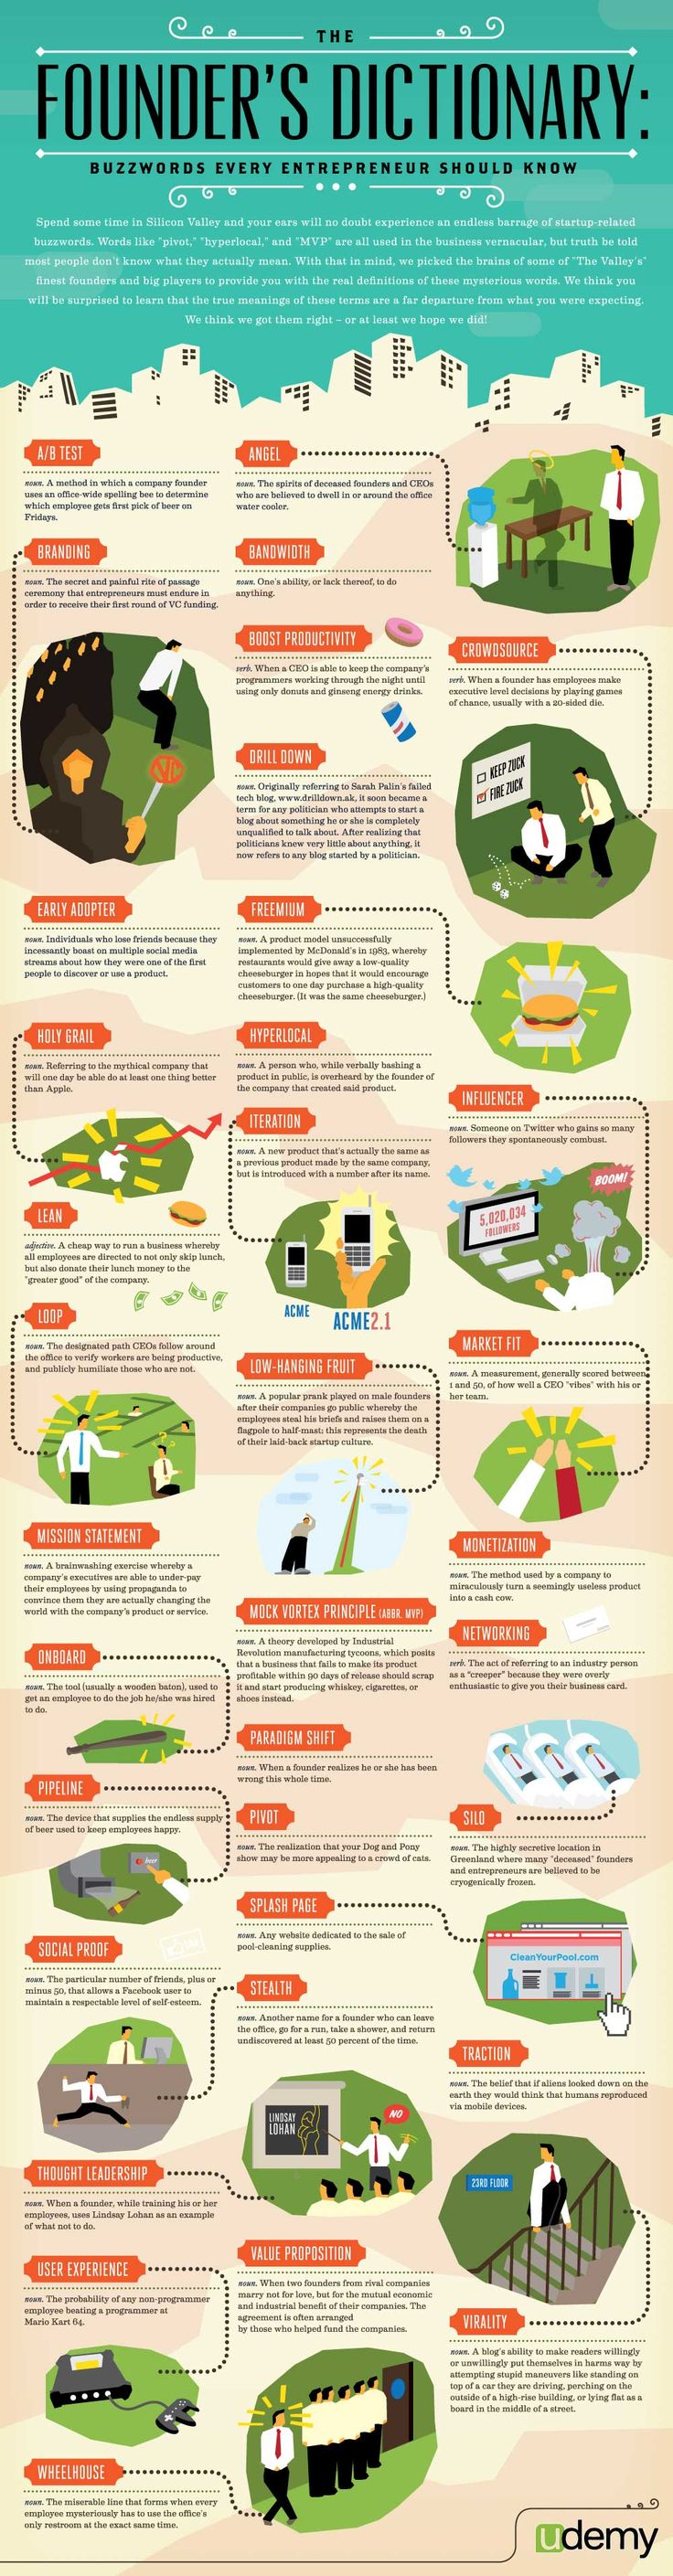 Founders Dictionary > 35 Startup Buzzwords Every Entrepreneur Should Know #infographic